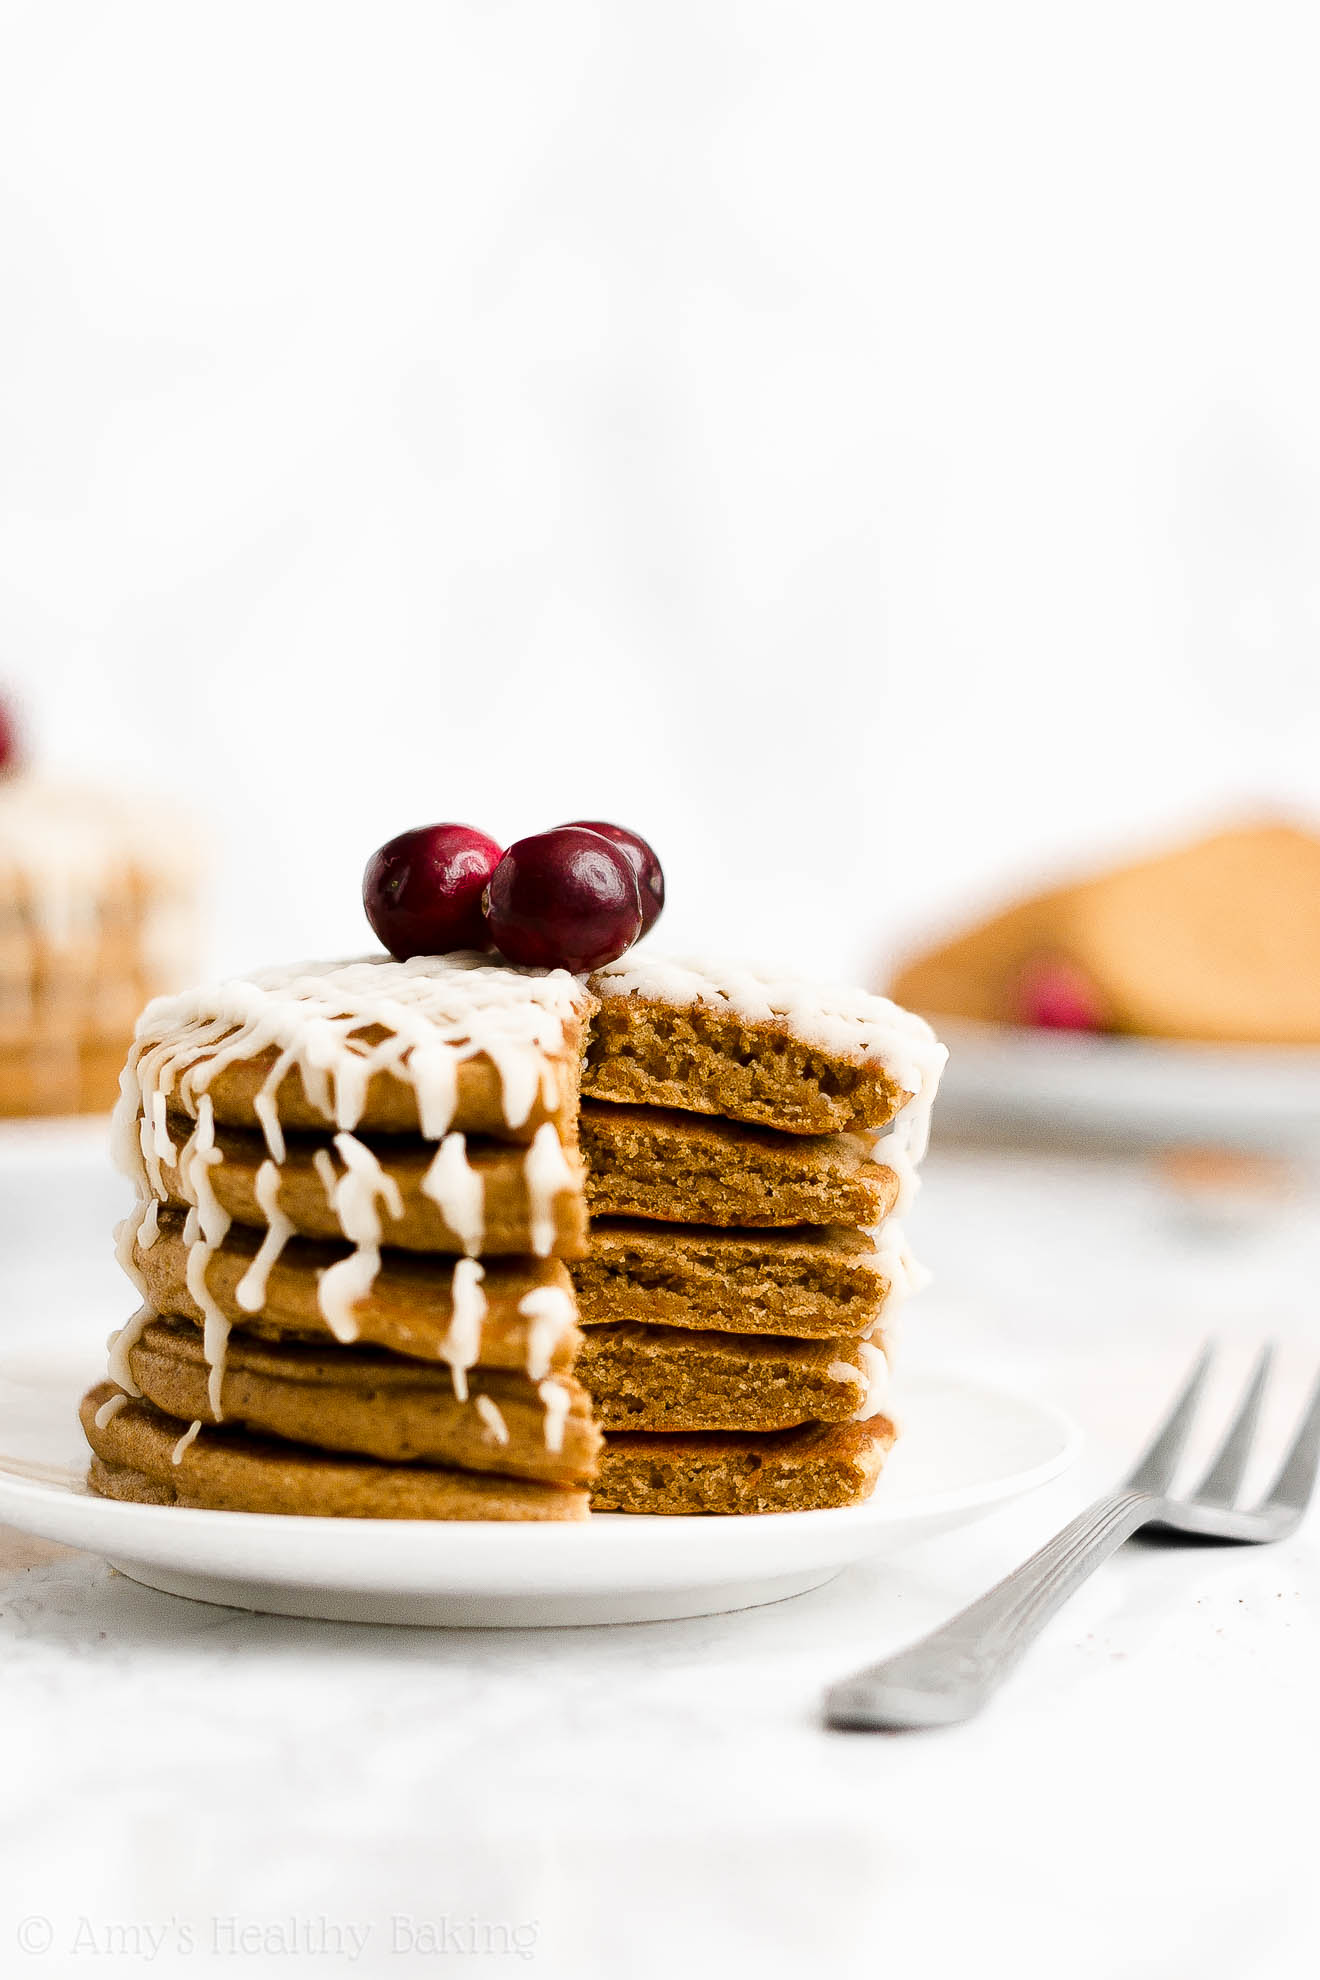 BEST EVER Easy Healthy Whole Wheat Sugar Free Fluffy Gingerbread Pancakes